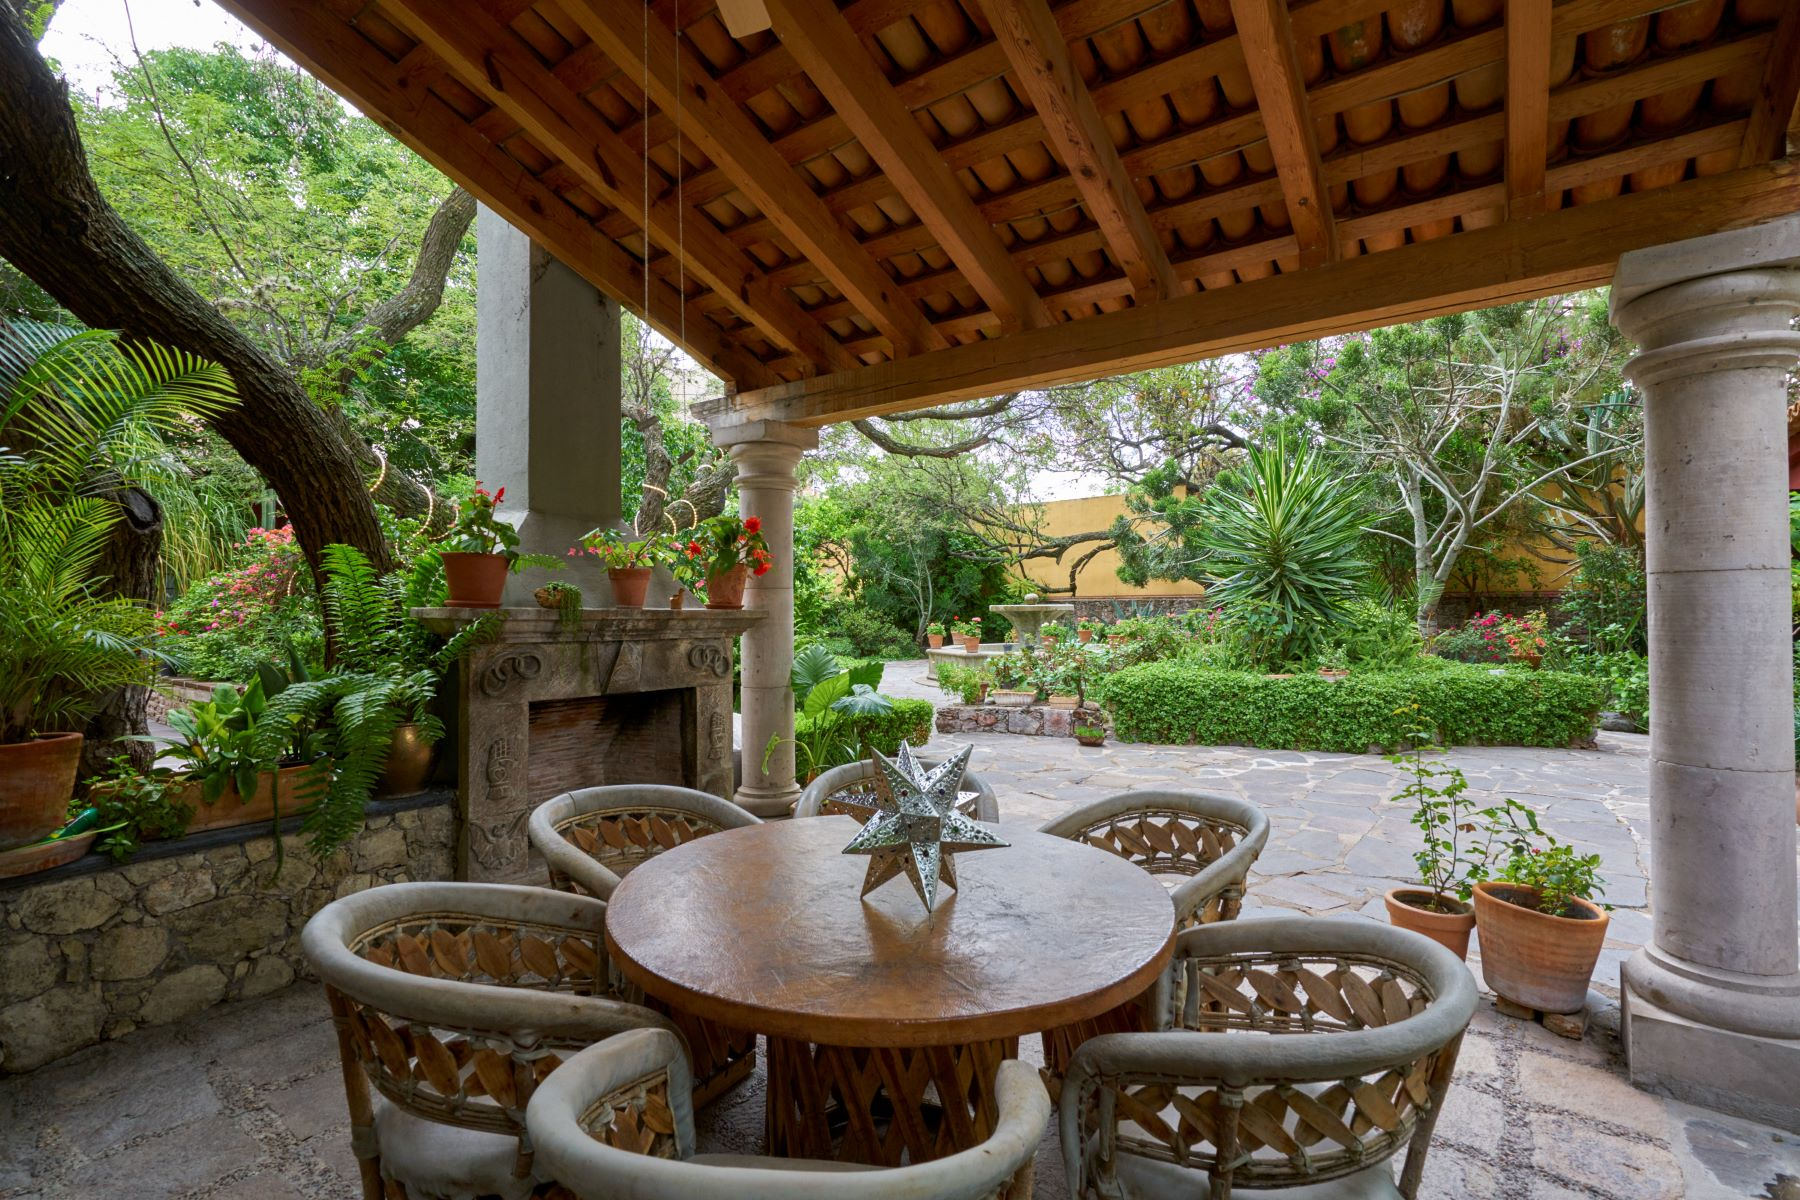 Single Family Home for Sale at CASA ALAMEDA San Antonio, San Miguel De Allende, Guanajuato Mexico